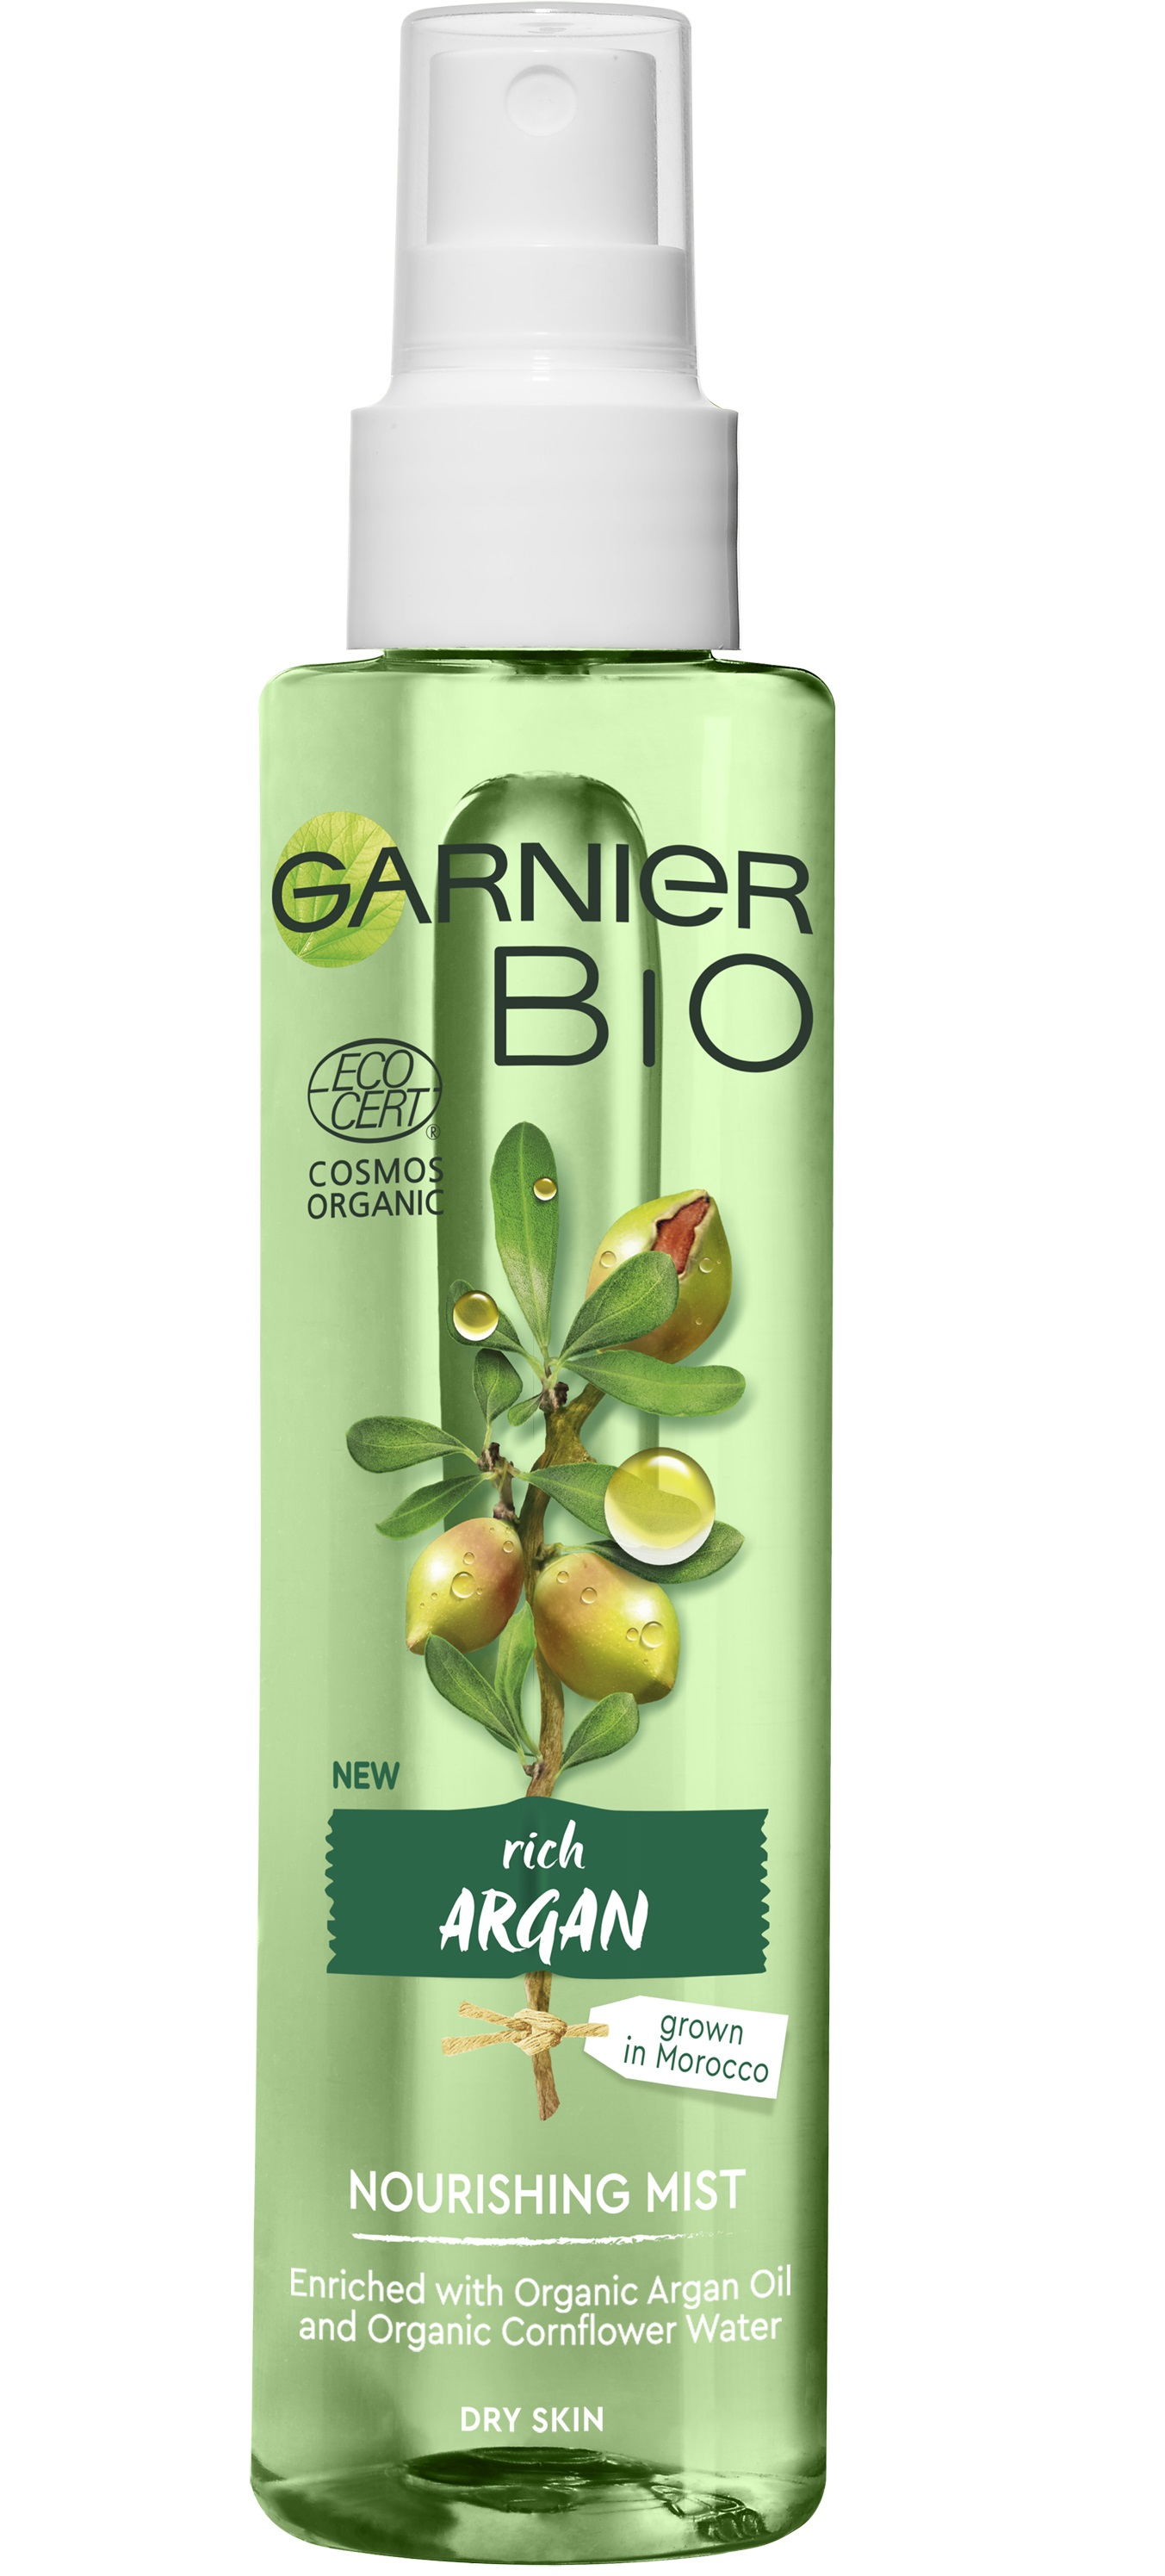 Bio Face Cleansing Gel Argan Caring Mist